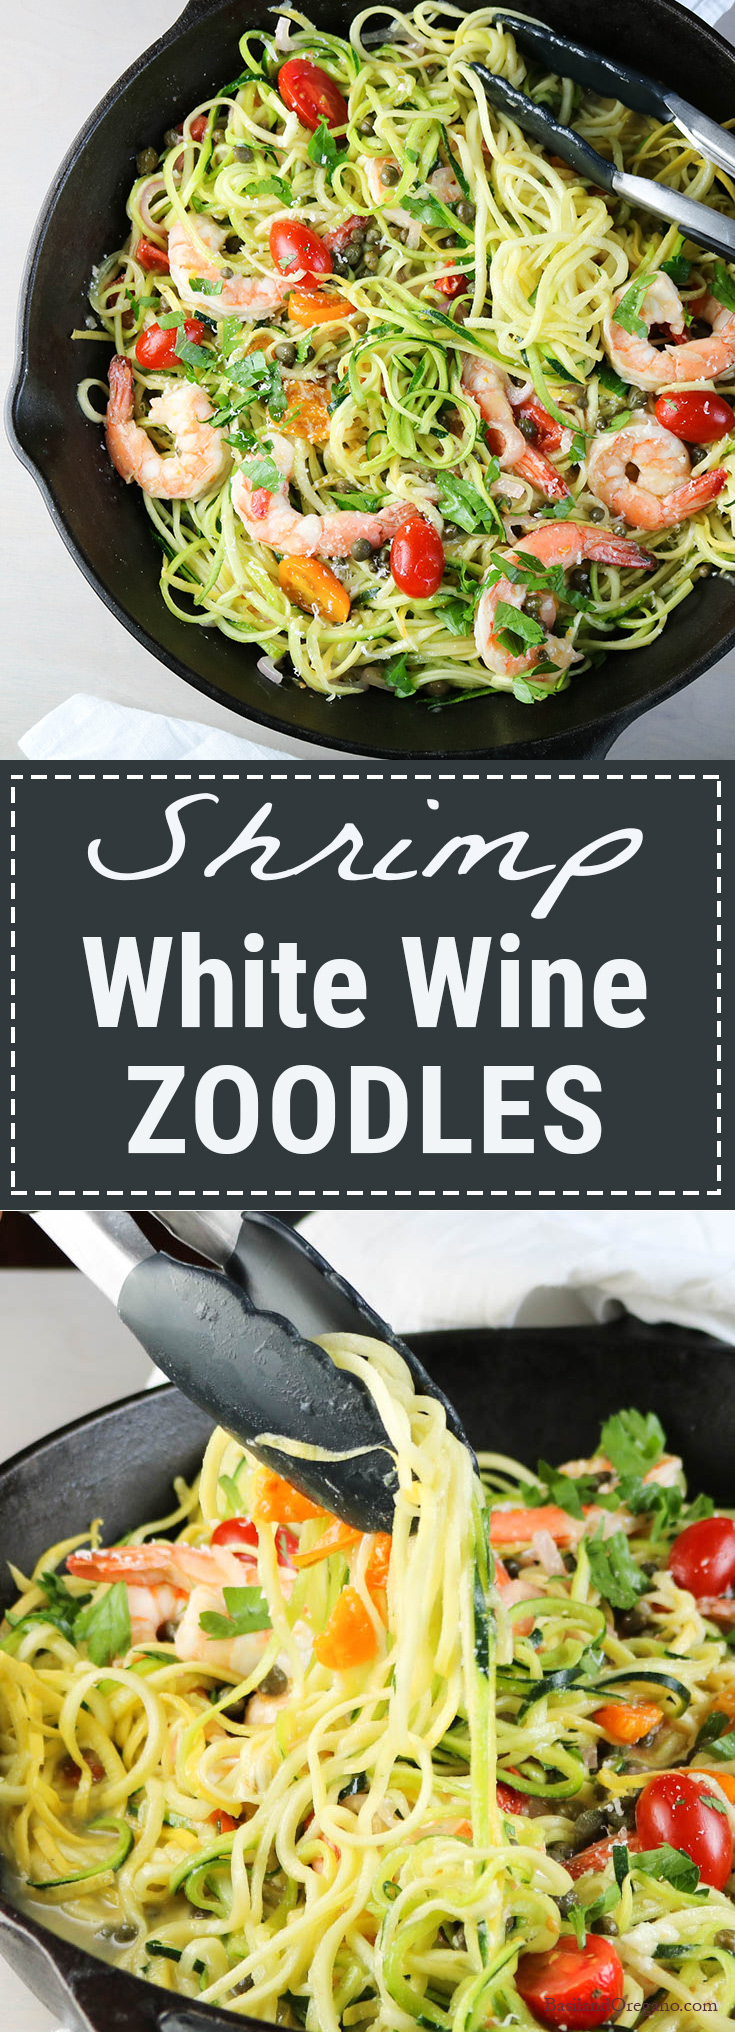 Shrimp Zoodles in White Wine Sauce